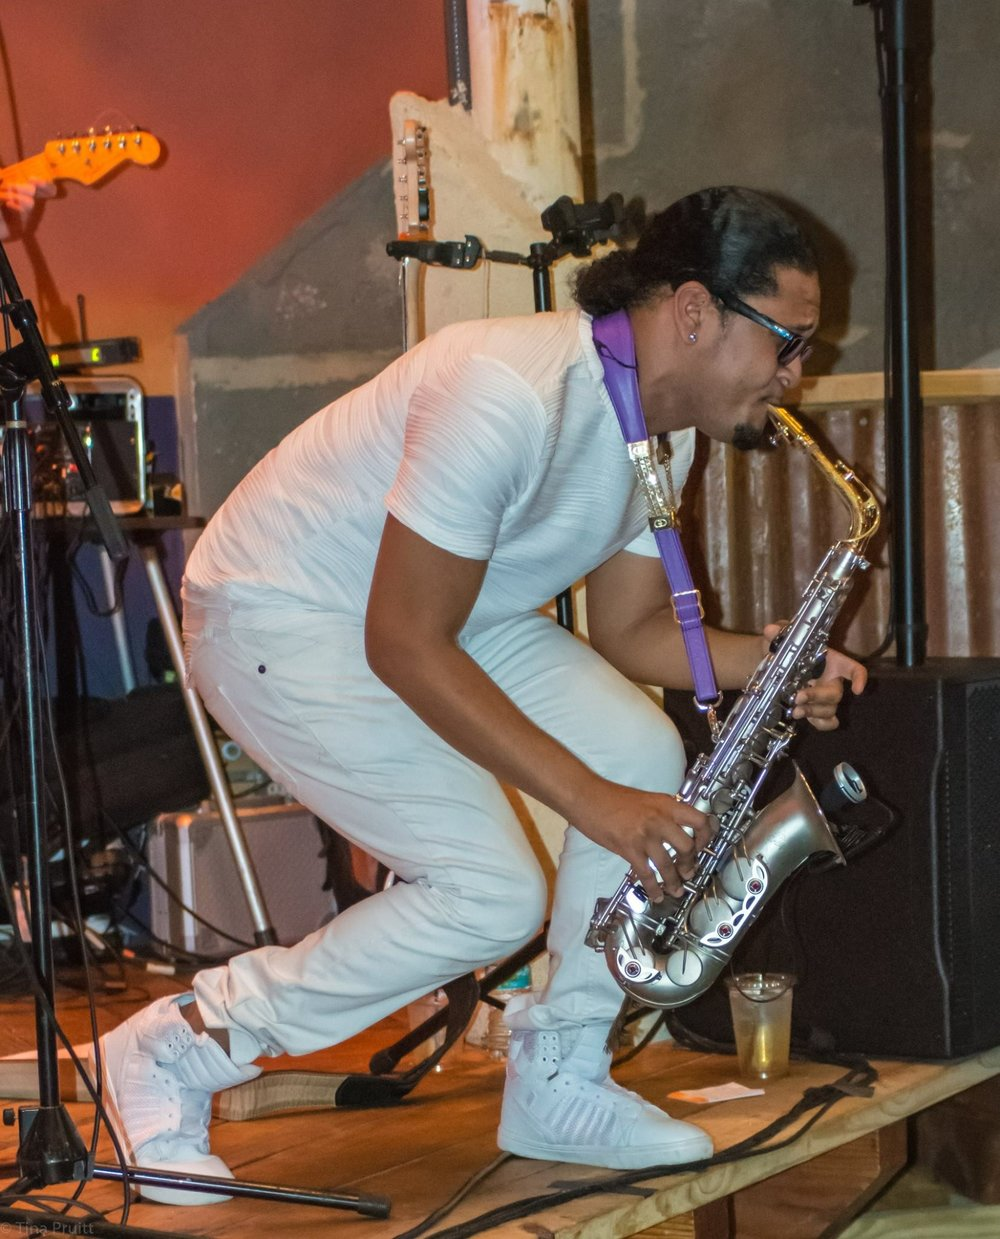 Adrian Crutchfield - Adrian Crutchfield has taken the world by storm in recent years, not only as the last sax player to perform and record with Prince, touring the world and being featured on Prince's last three albums, but also touring domestically and internationally with acts such as Lionel Ritchie, Bette Midler, and Cee Lo Green — all the while writing and building his 2017 release titled 'Leap'.Follow Him: Facebook - Instagram - YoutubeWEBSITE: http://adriancrutchfield.com